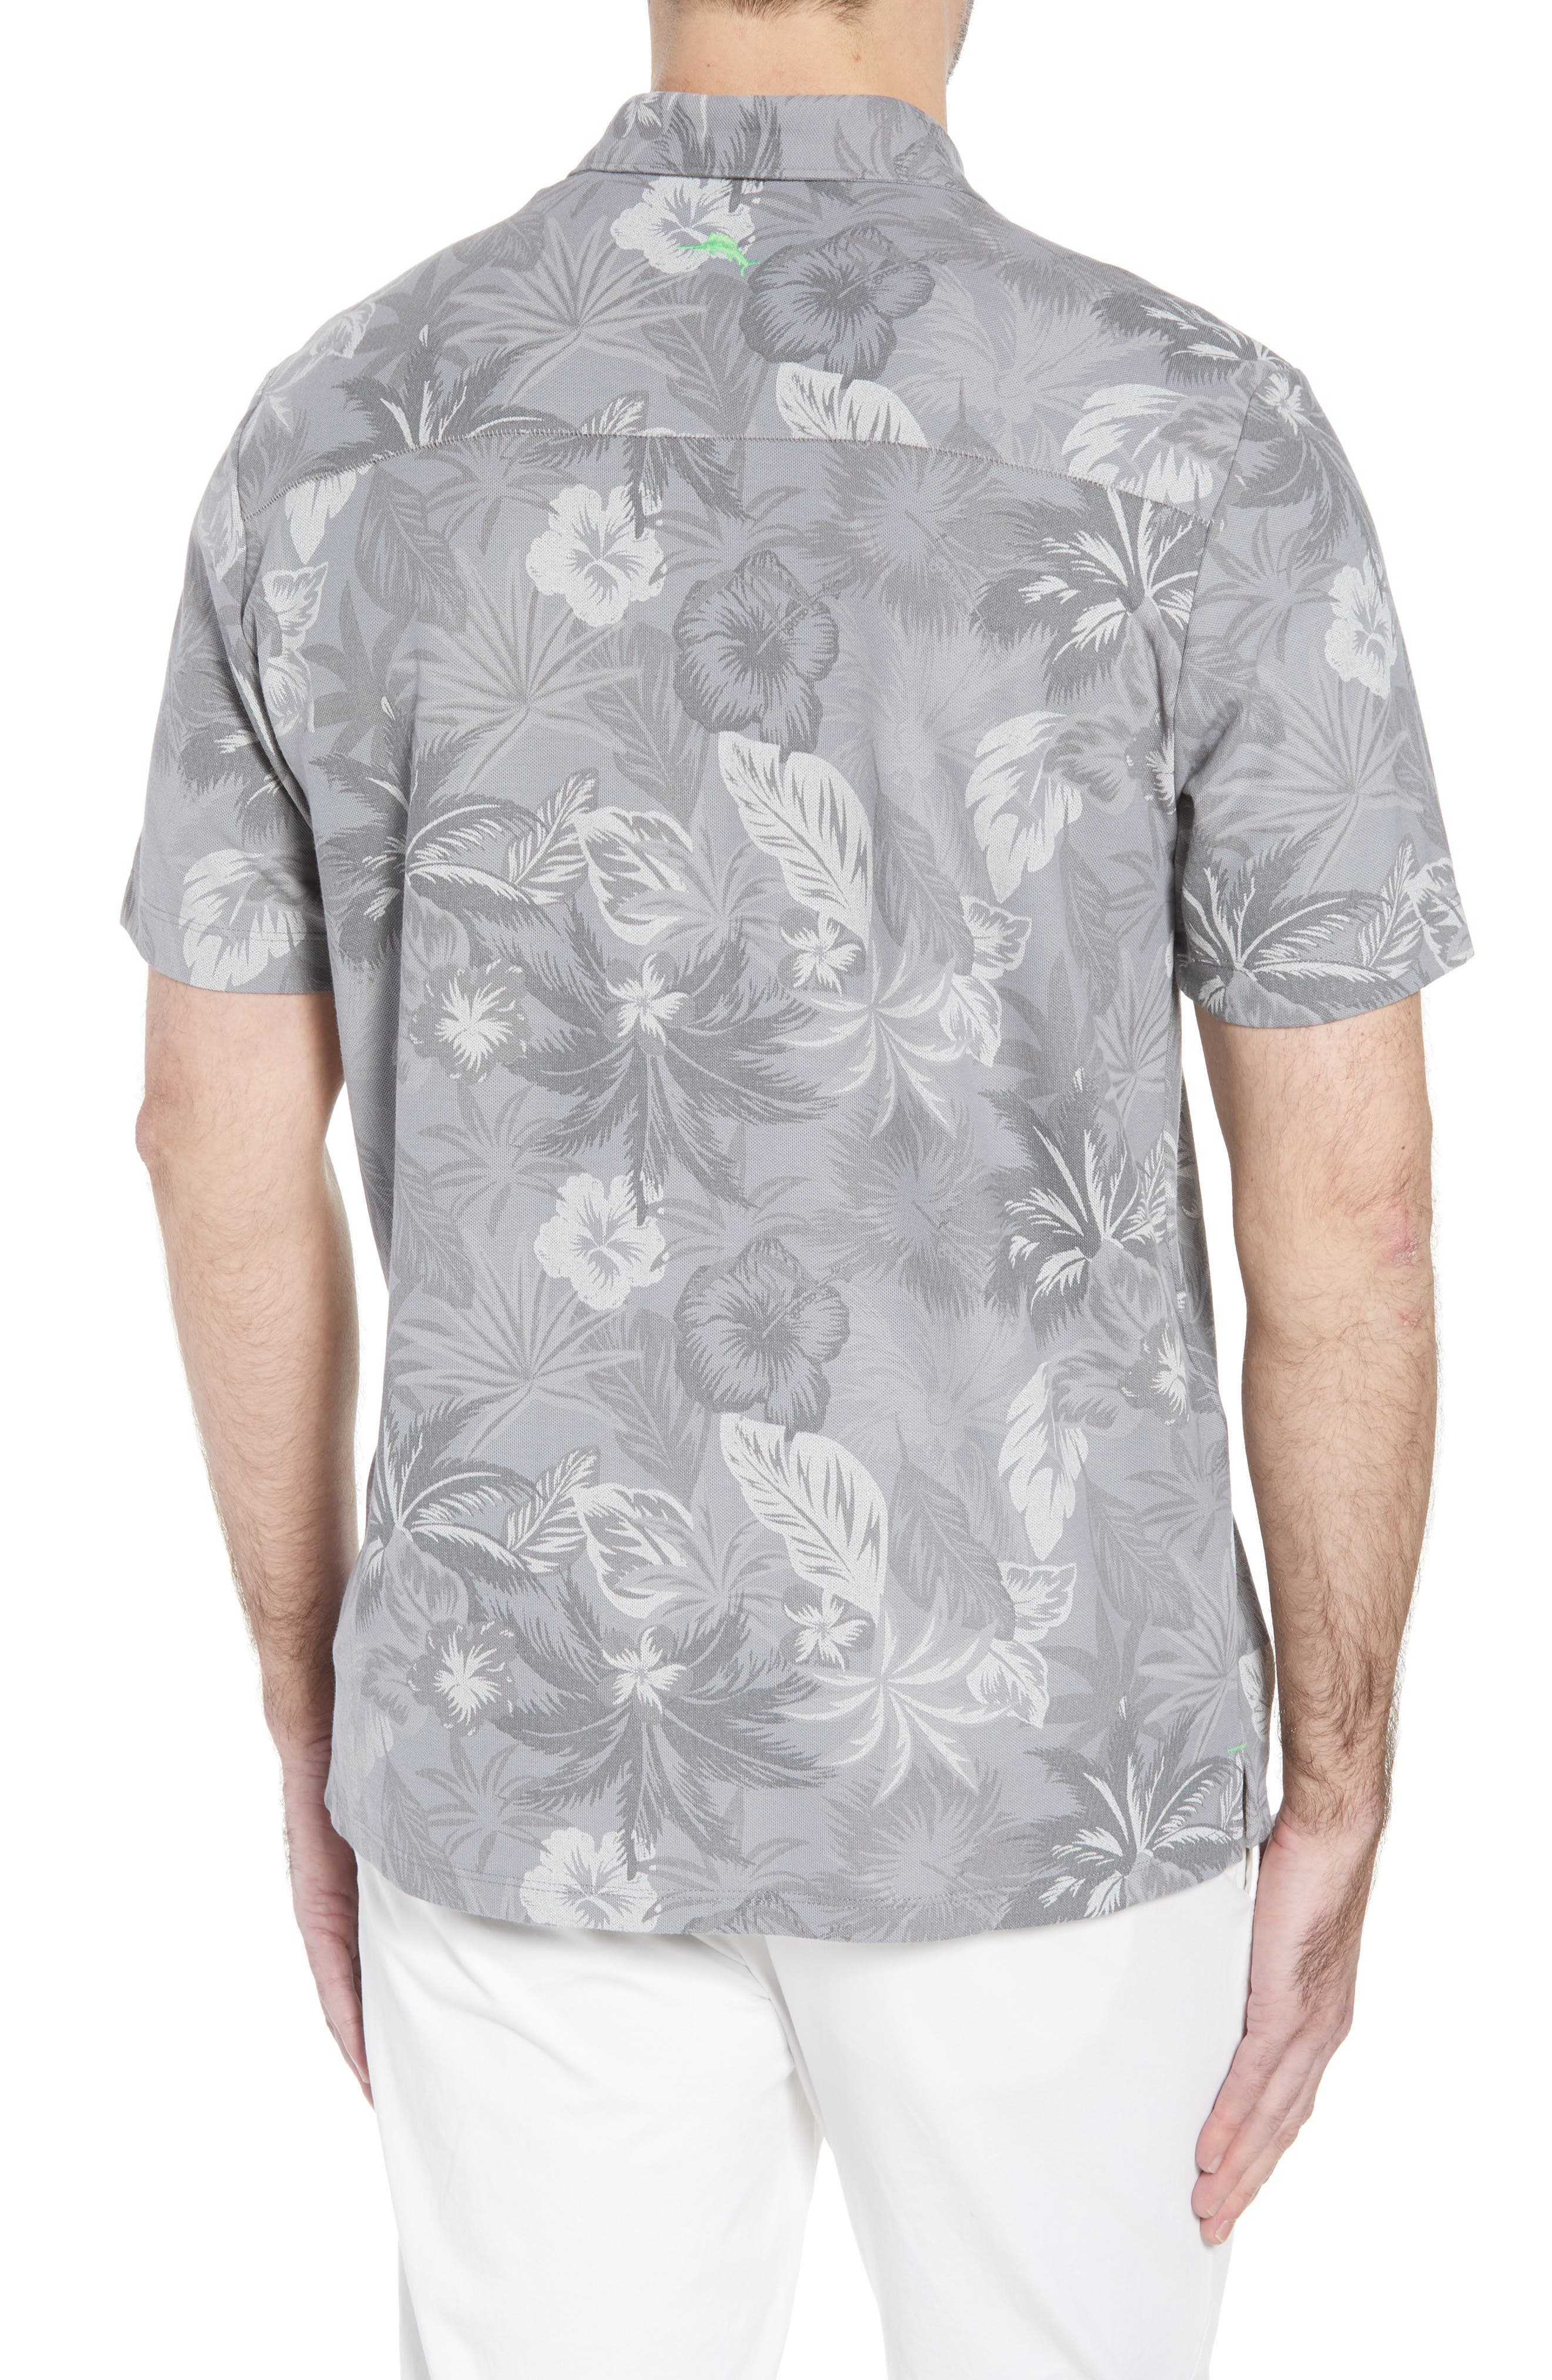 Fuego Floral Camp Shirt,                             Alternate thumbnail 2, color,                             050